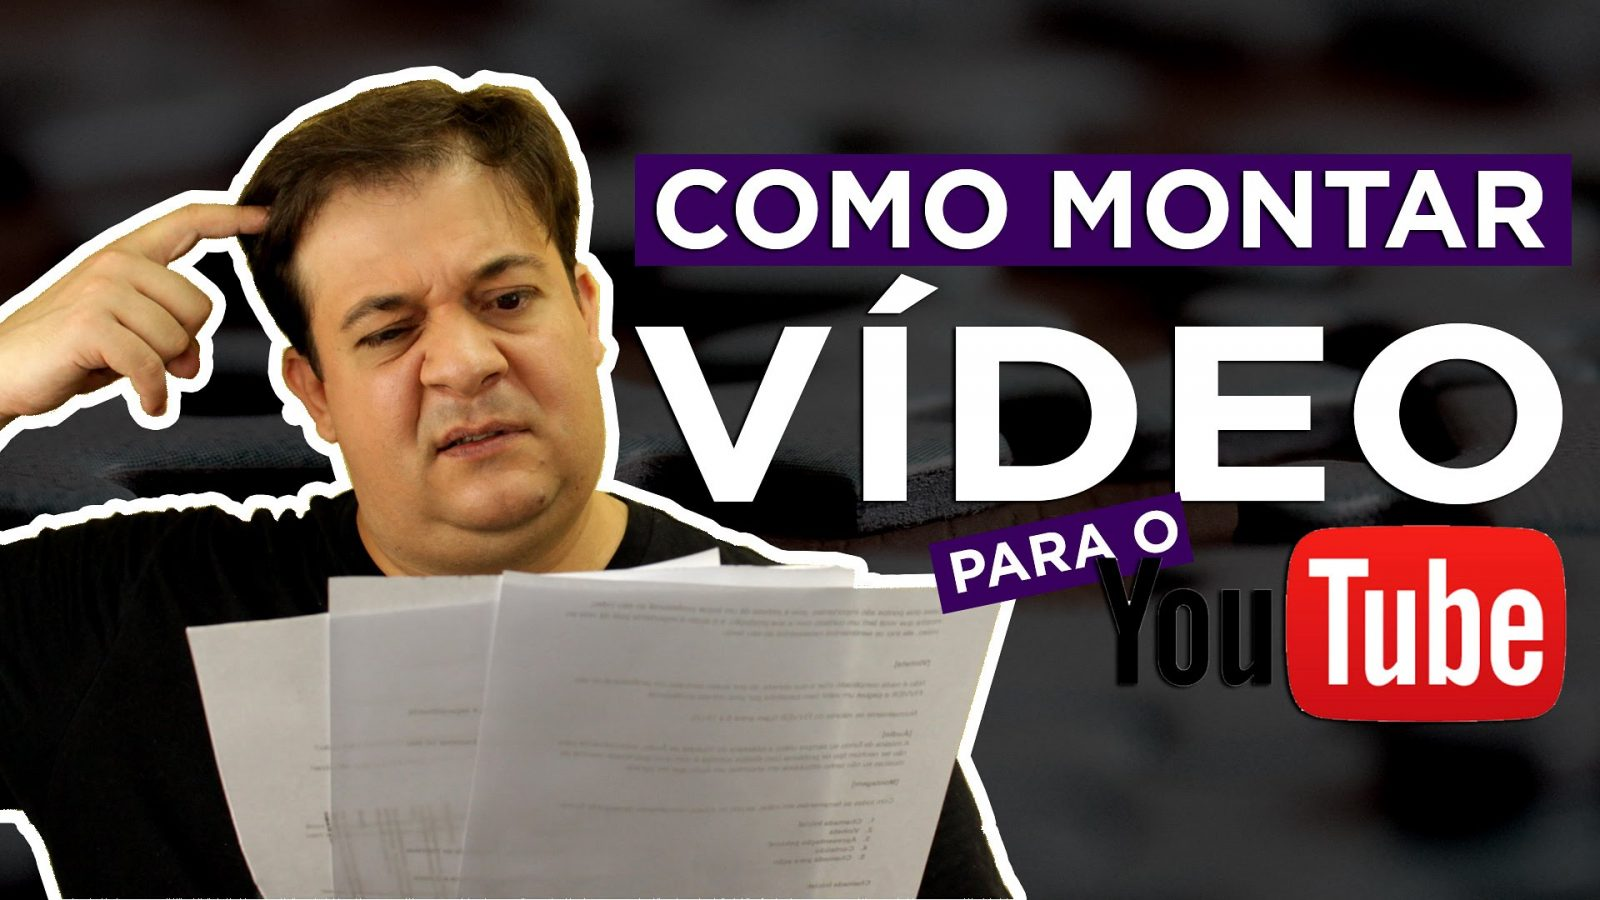 Como montar vídeo para youtube